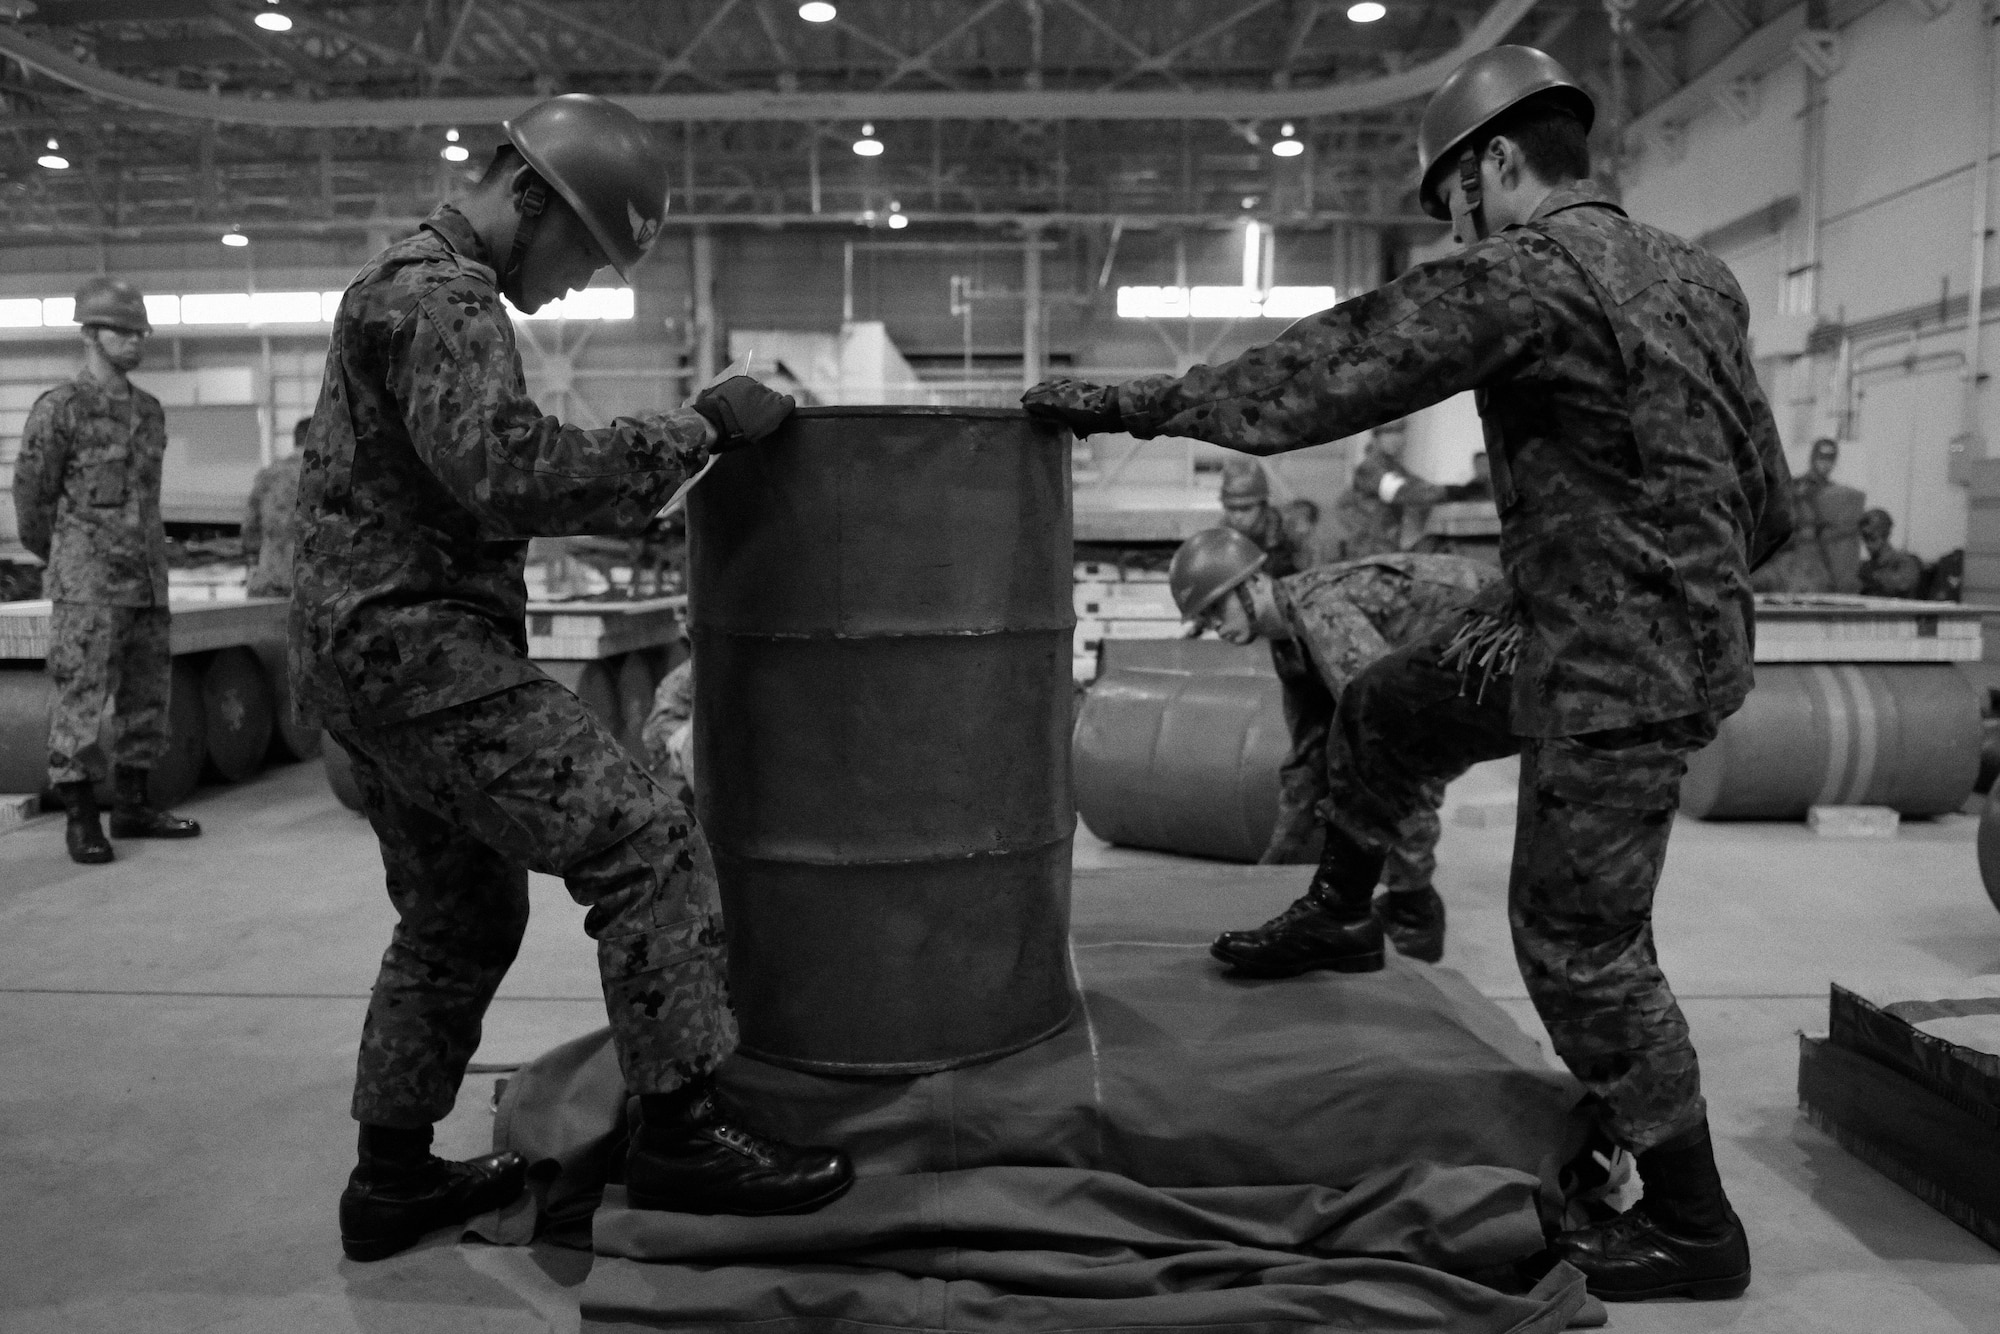 Japan Ground Self-Defense Force members prepare to construct a container delivery system bundle at Yokota Air Base, Japan, Nov. 7, 2016. As part of Keen Sword 17, U.S. and Japan Self-Defense Force members participated in C-17 Globemaster III tie-down training, UH-1N Iroquois night flight familiarization and C-130 Hercules container delivery system bundle drops, each designed to increase combat readiness and interoperability within the framework of the U.S.-Japan alliance. (U.S. Air Force photo by Senior Airman Delano Scott/Released)